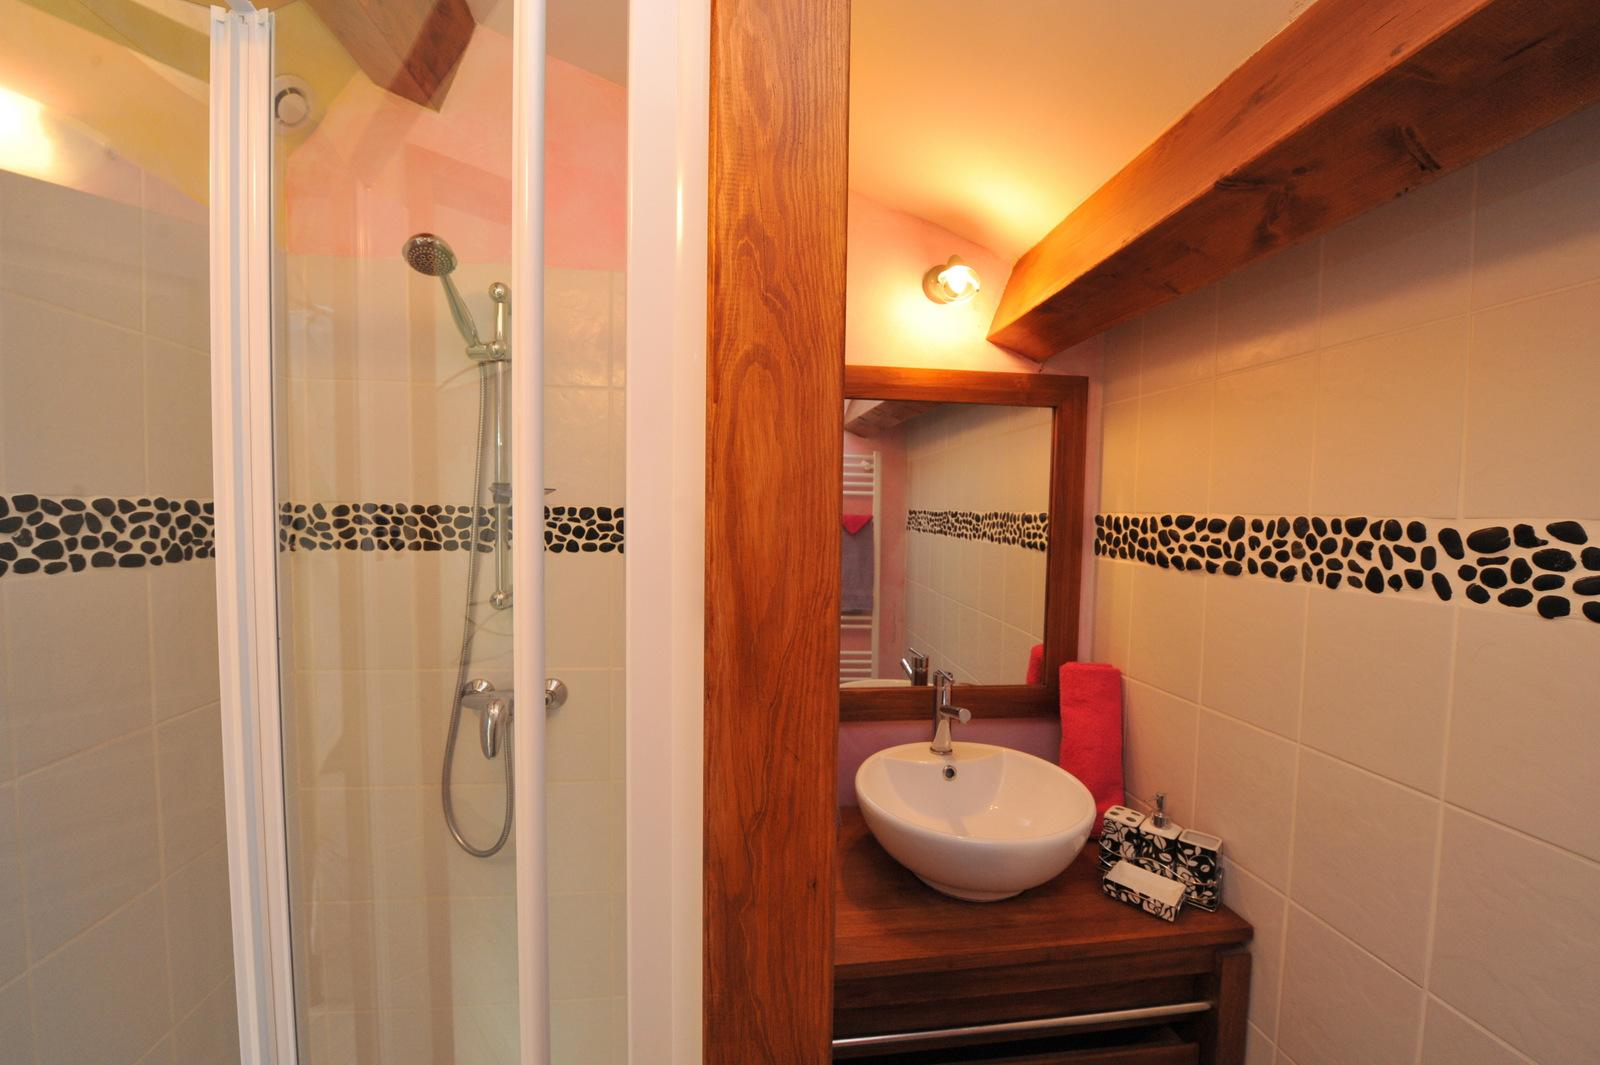 Private bathroom for that romantic guest room with shower and wall frieze pebbles bowl sink set on a wooden slats plan